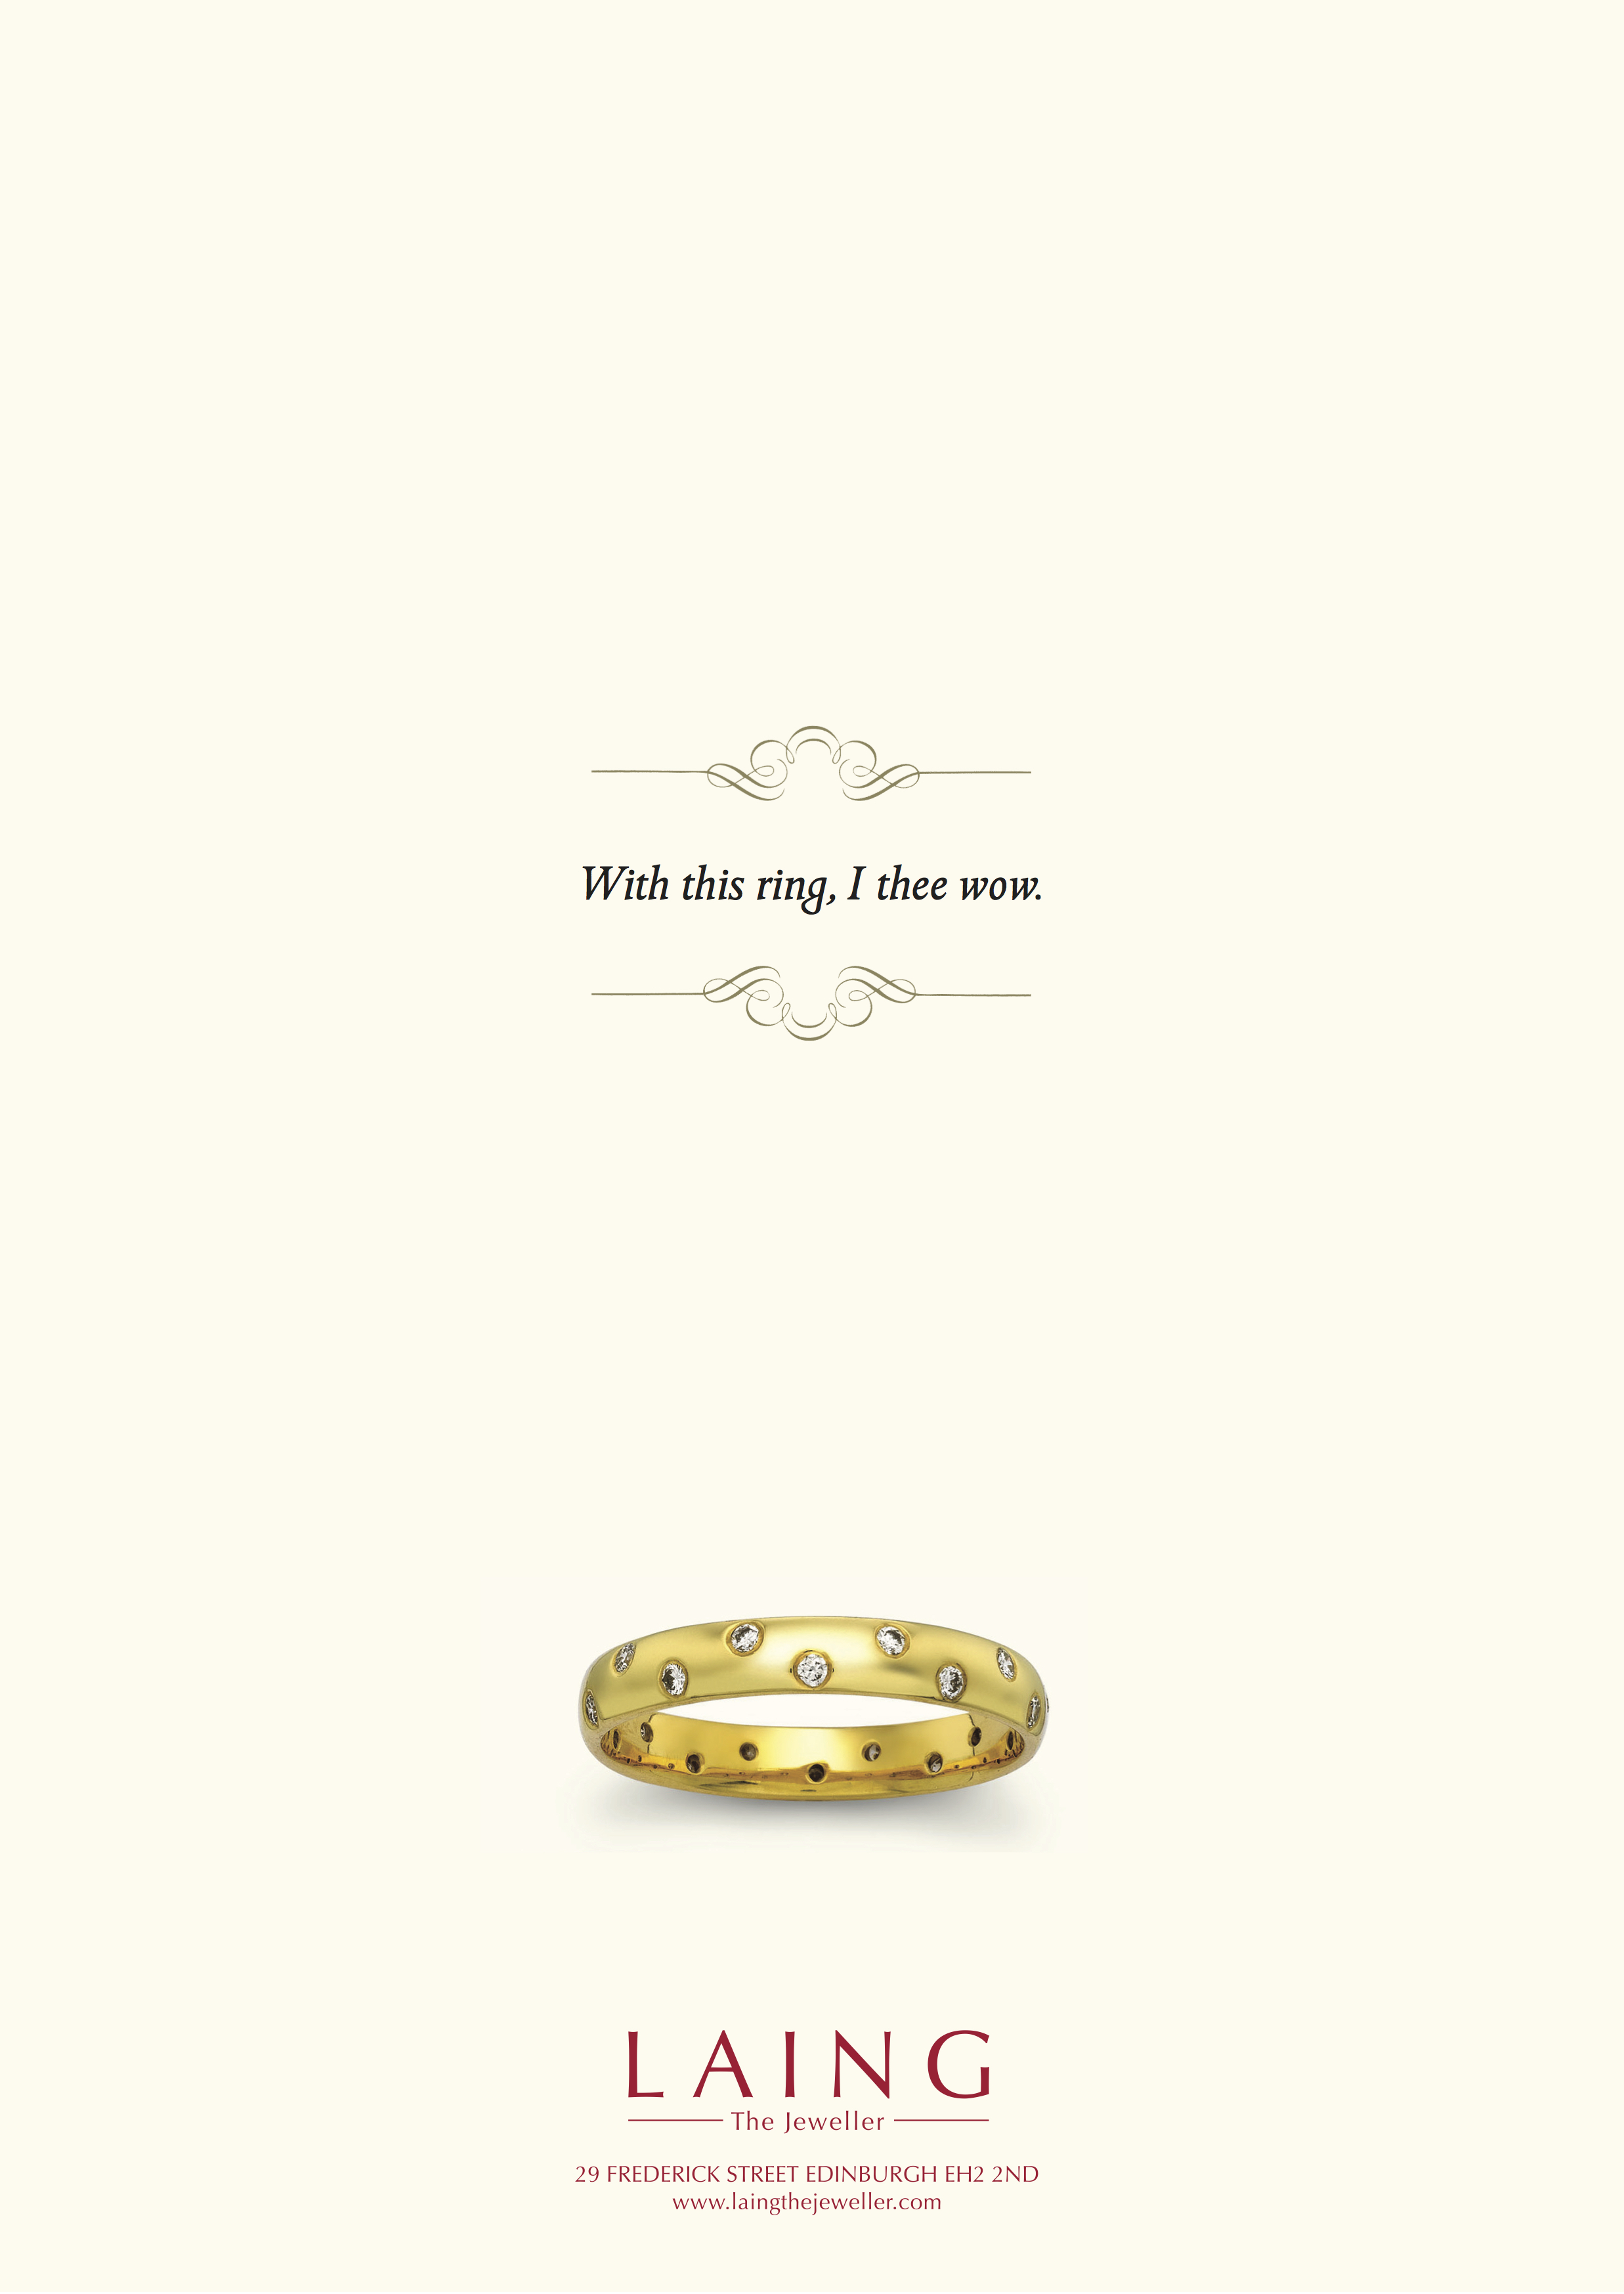 Laing jewellers wedding bands.jpg